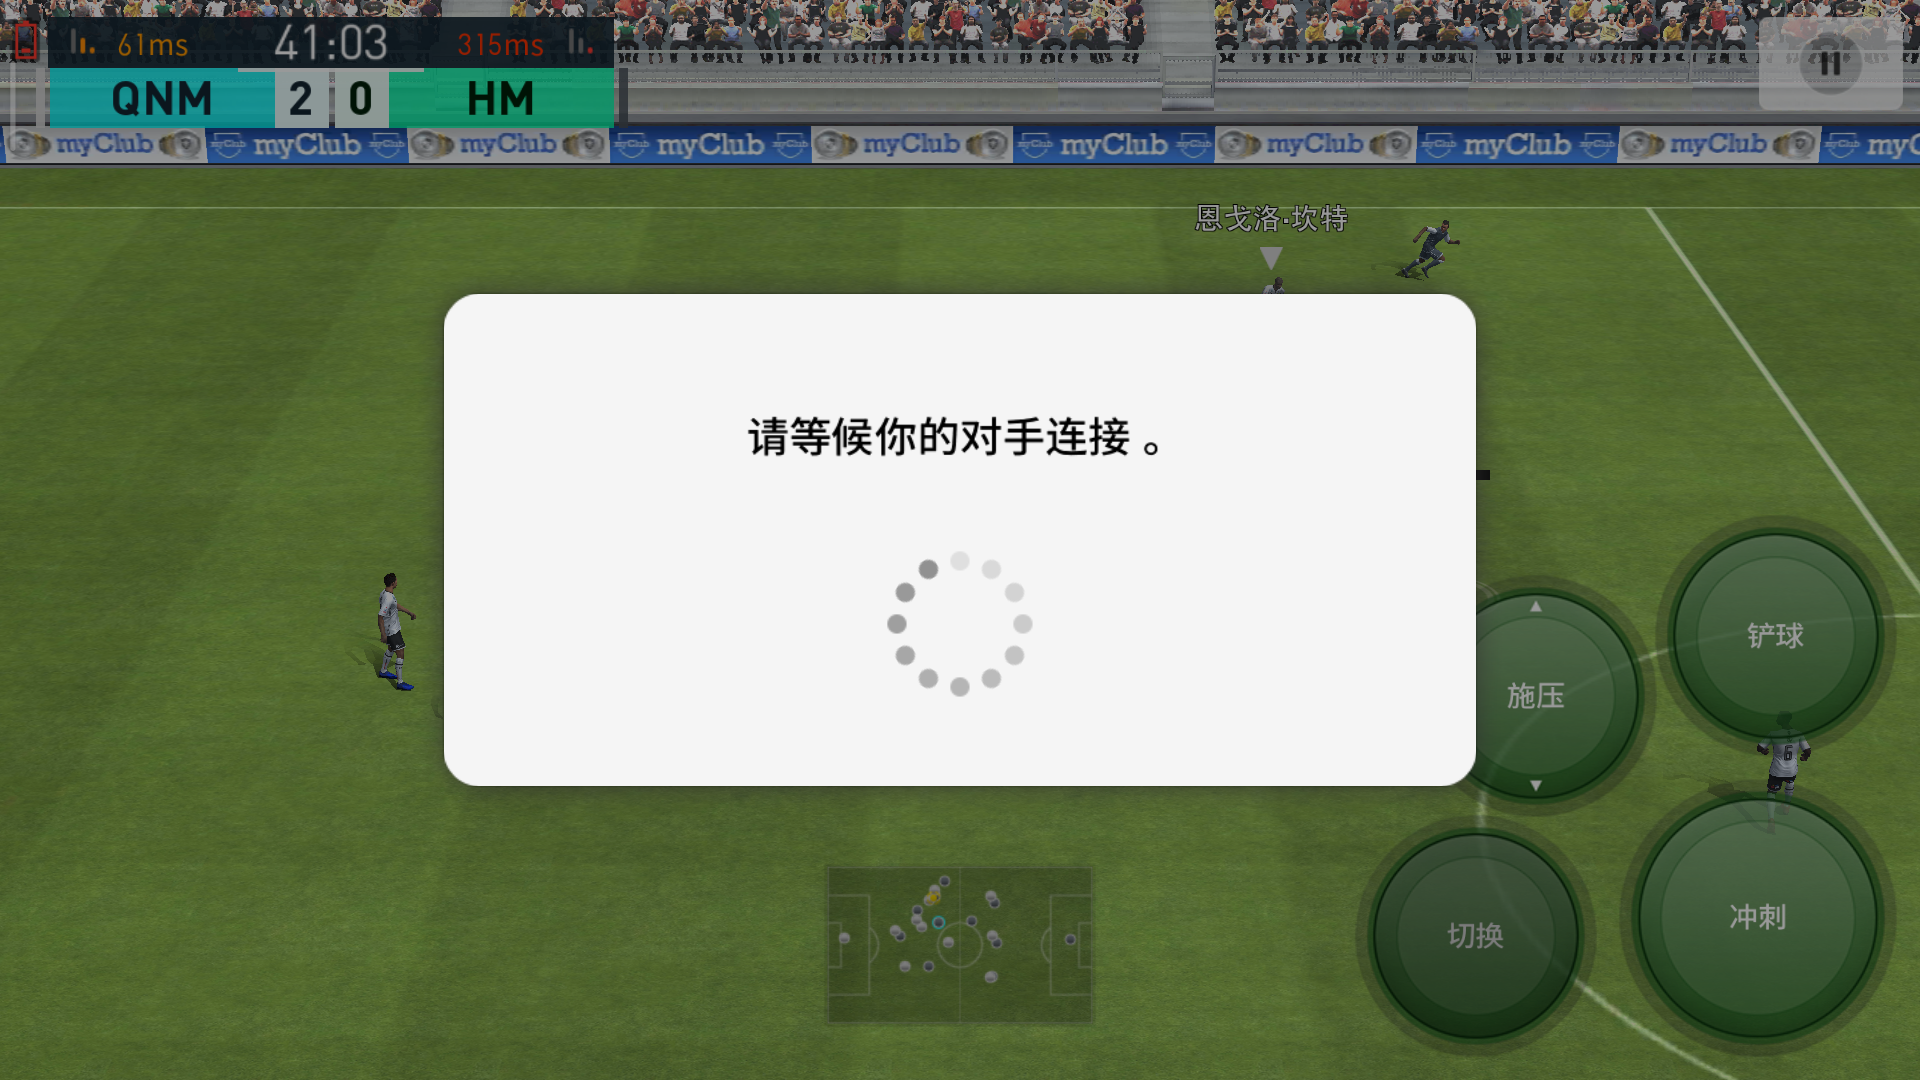 Screenshot_2019-04-22-00-31-16-914_com.netease.pes.png